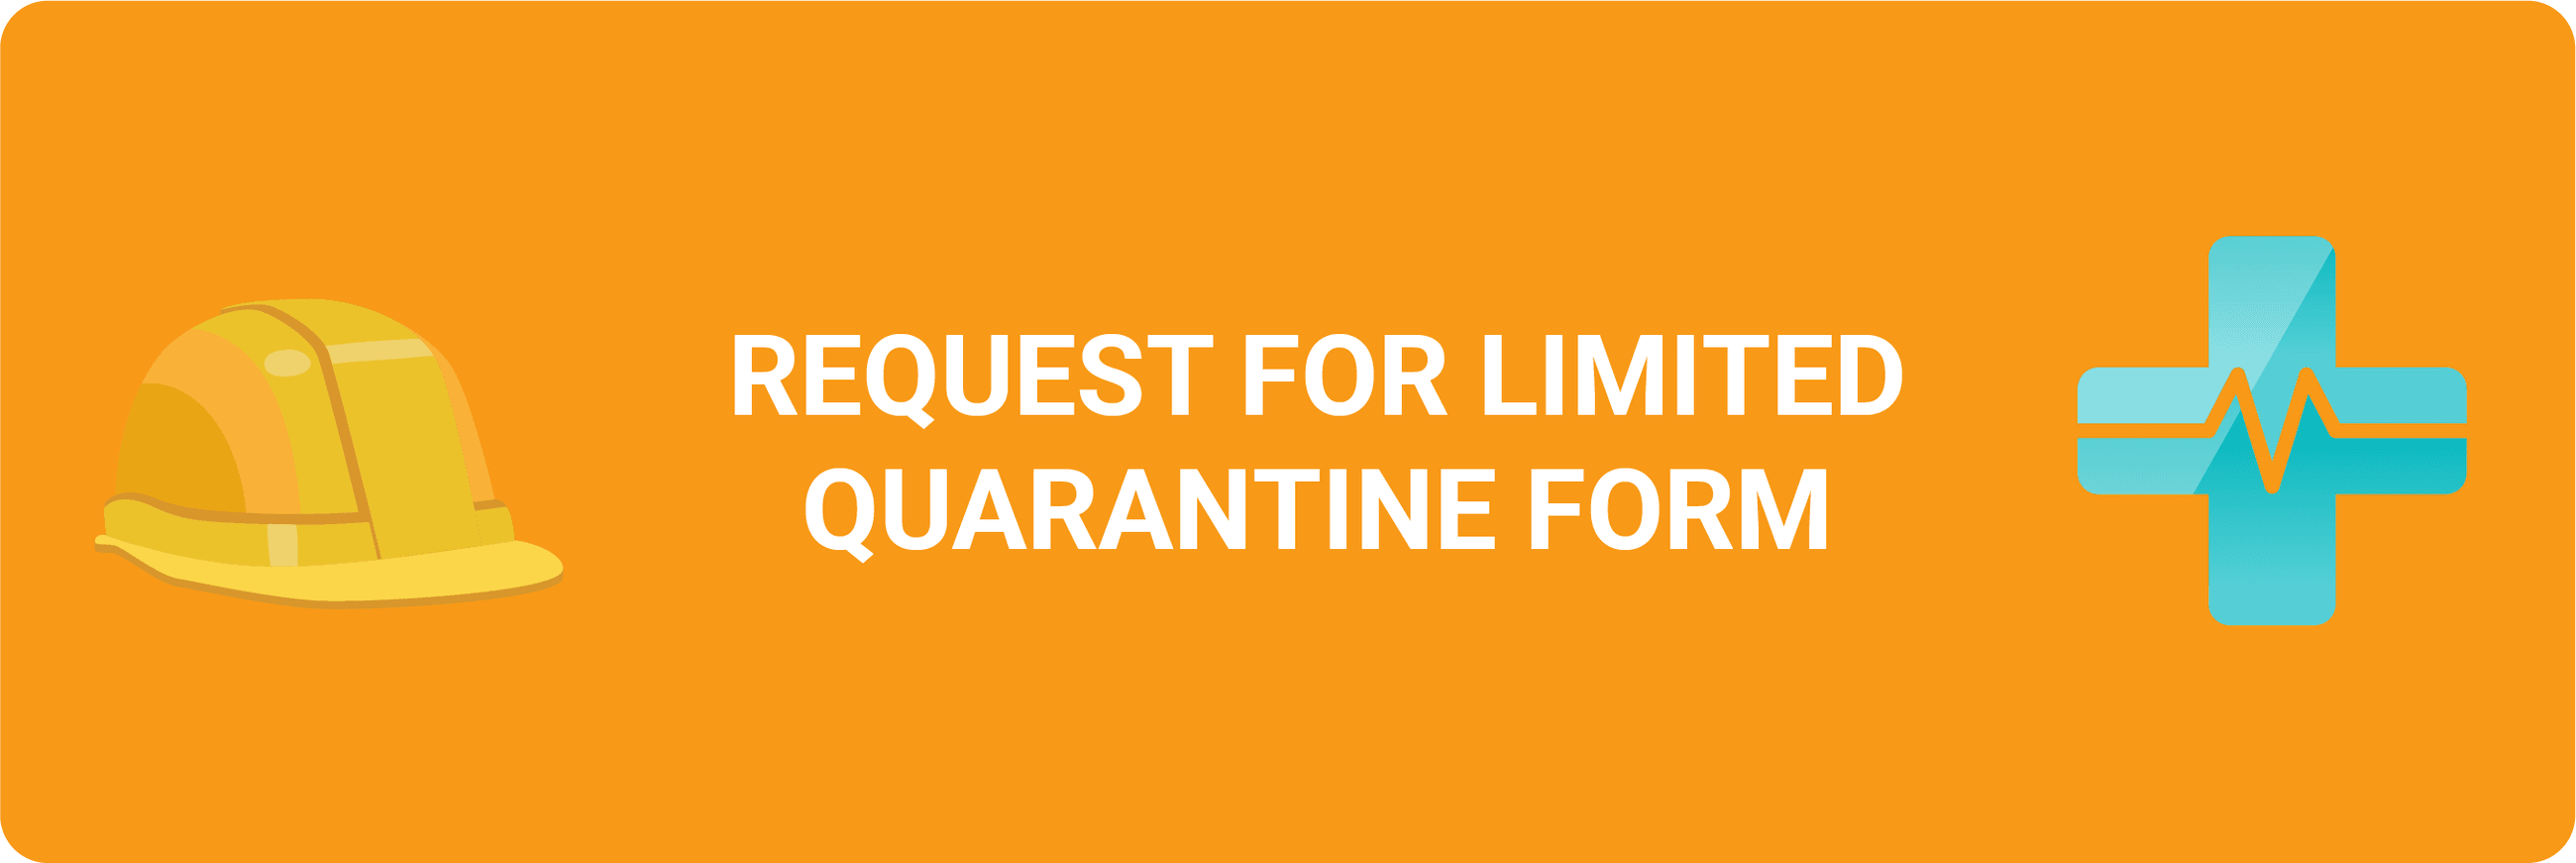 Request for Limited Quarantine Form